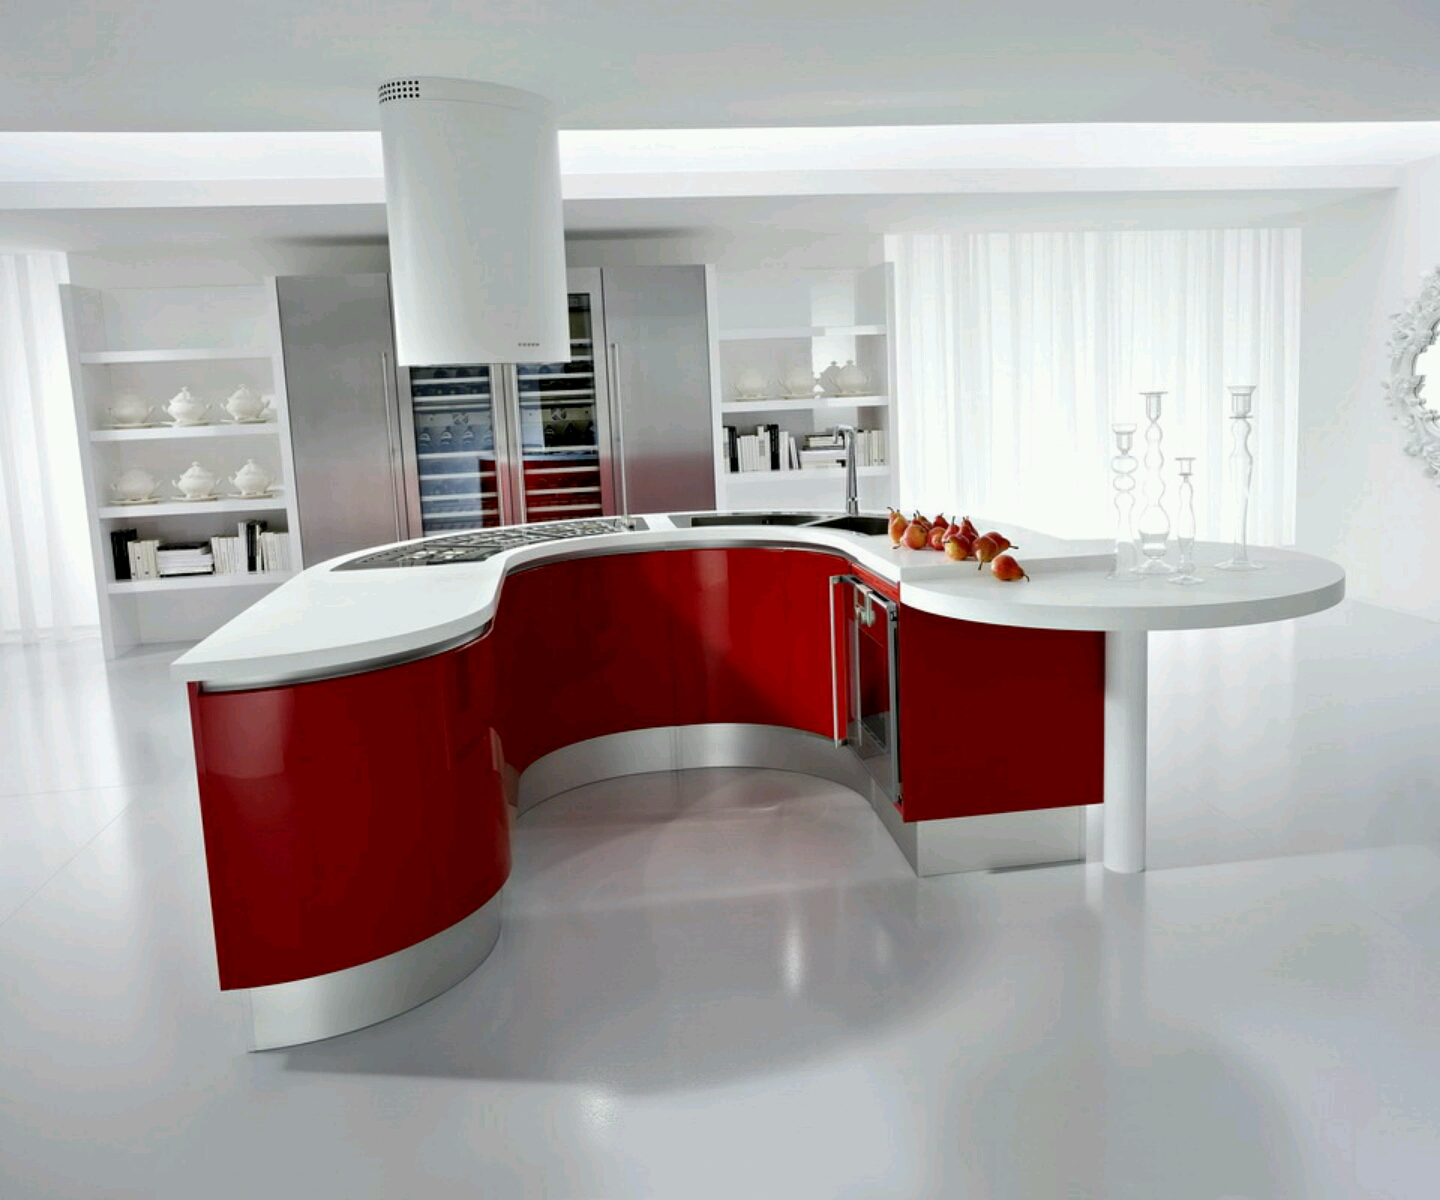 Modern kitchen cabinets designs ideas furniture gallery for Kitchen design ideas modern